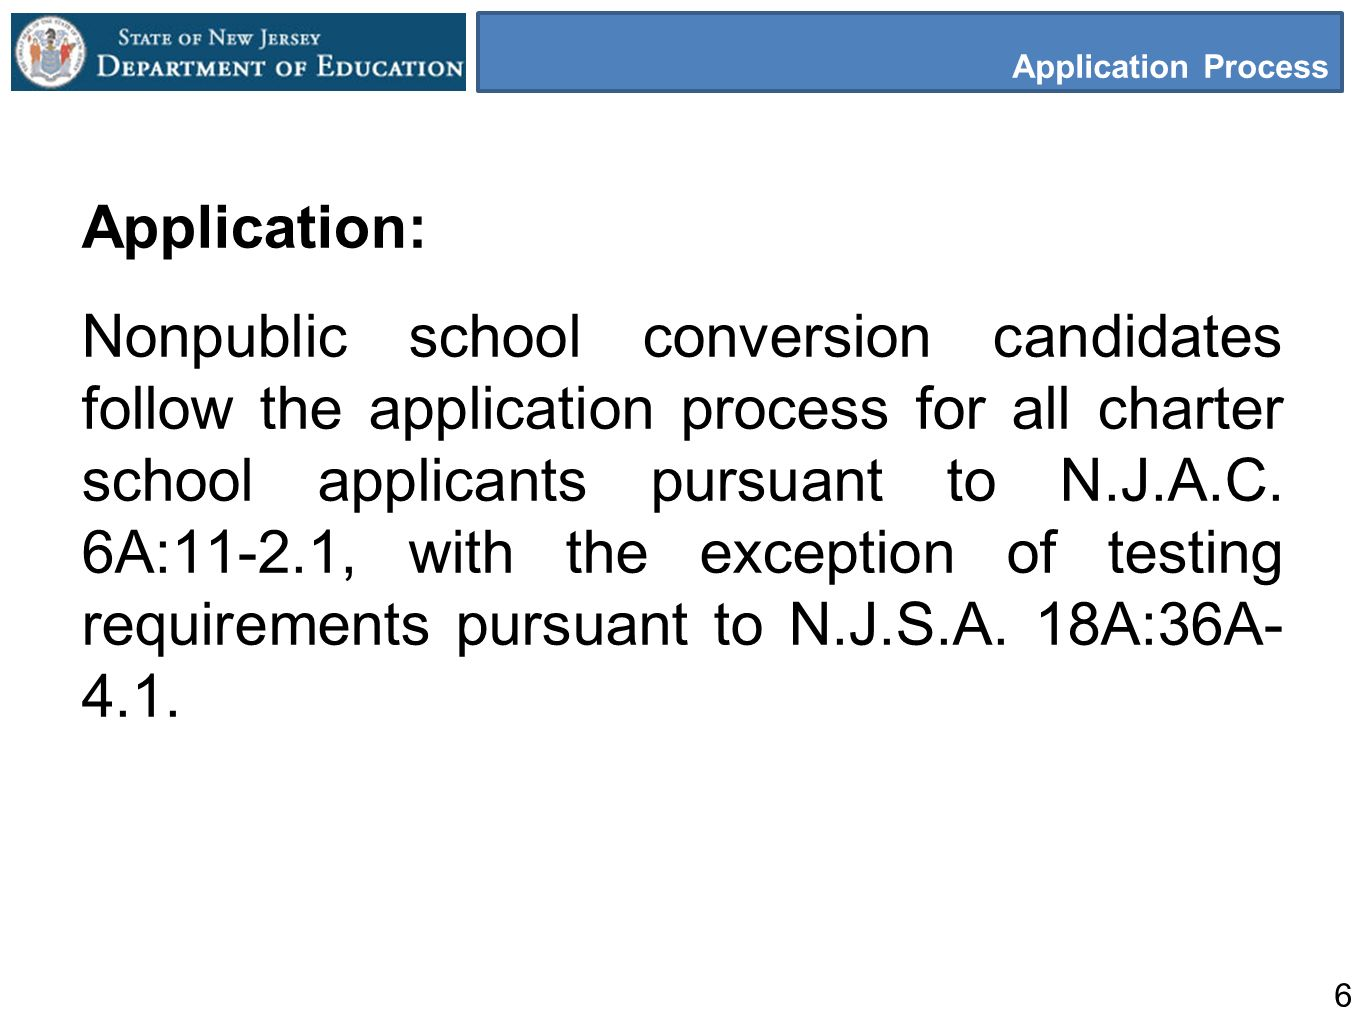 6 Application Process Application: Nonpublic school conversion candidates follow the application process for all charter school applicants pursuant to N.J.A.C.